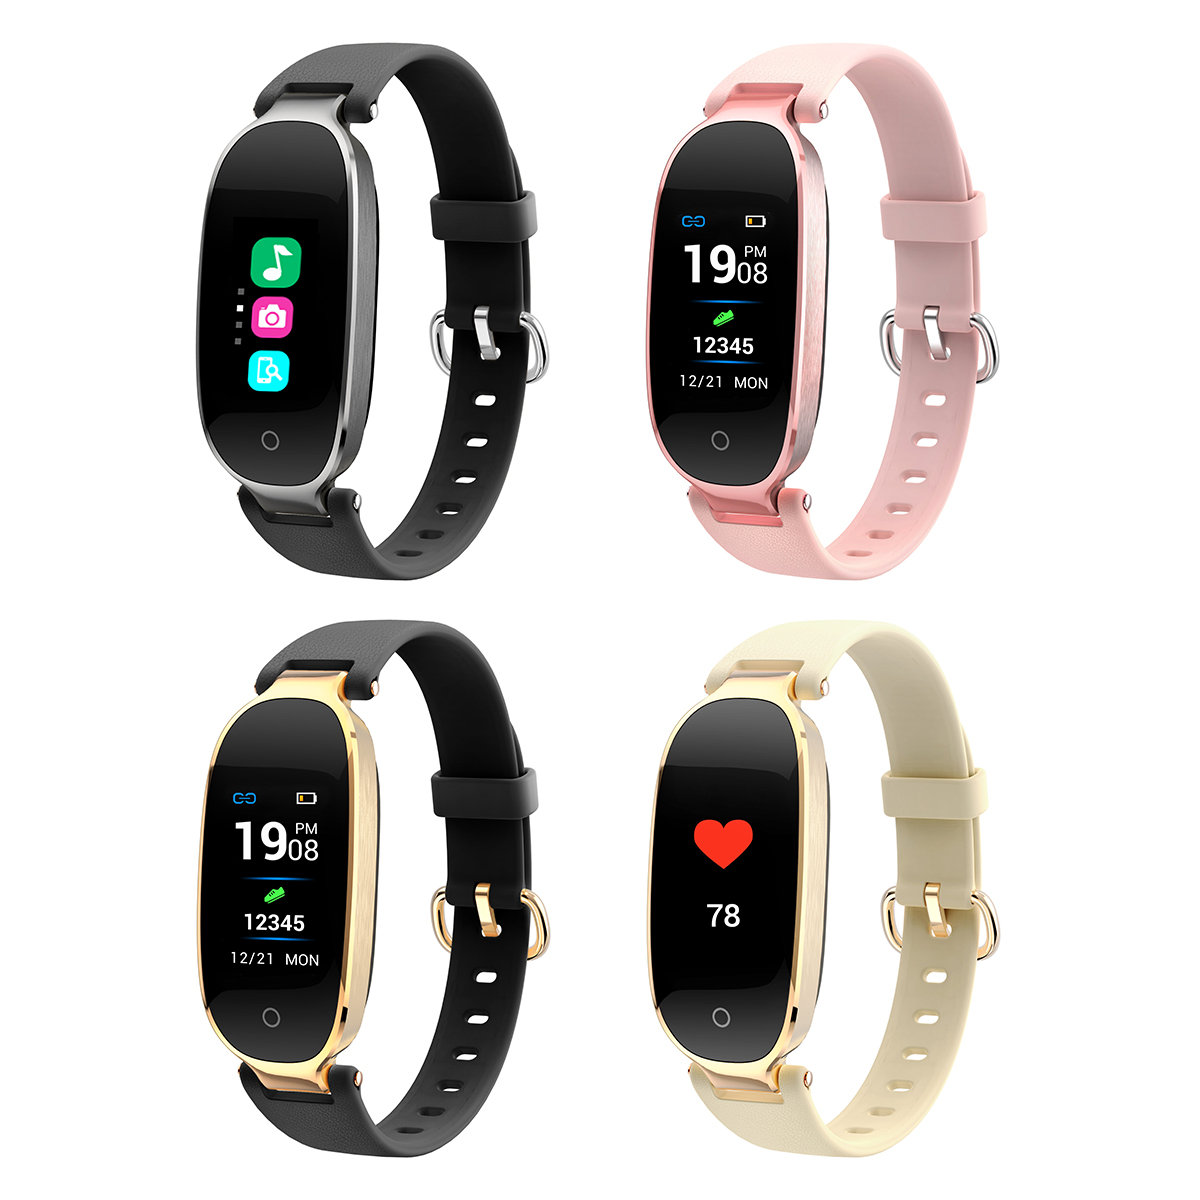 S3 Smart Heart Rate Watch Fashion Waterproof Bluetooth Sports Bracelet For Women Health Monitor